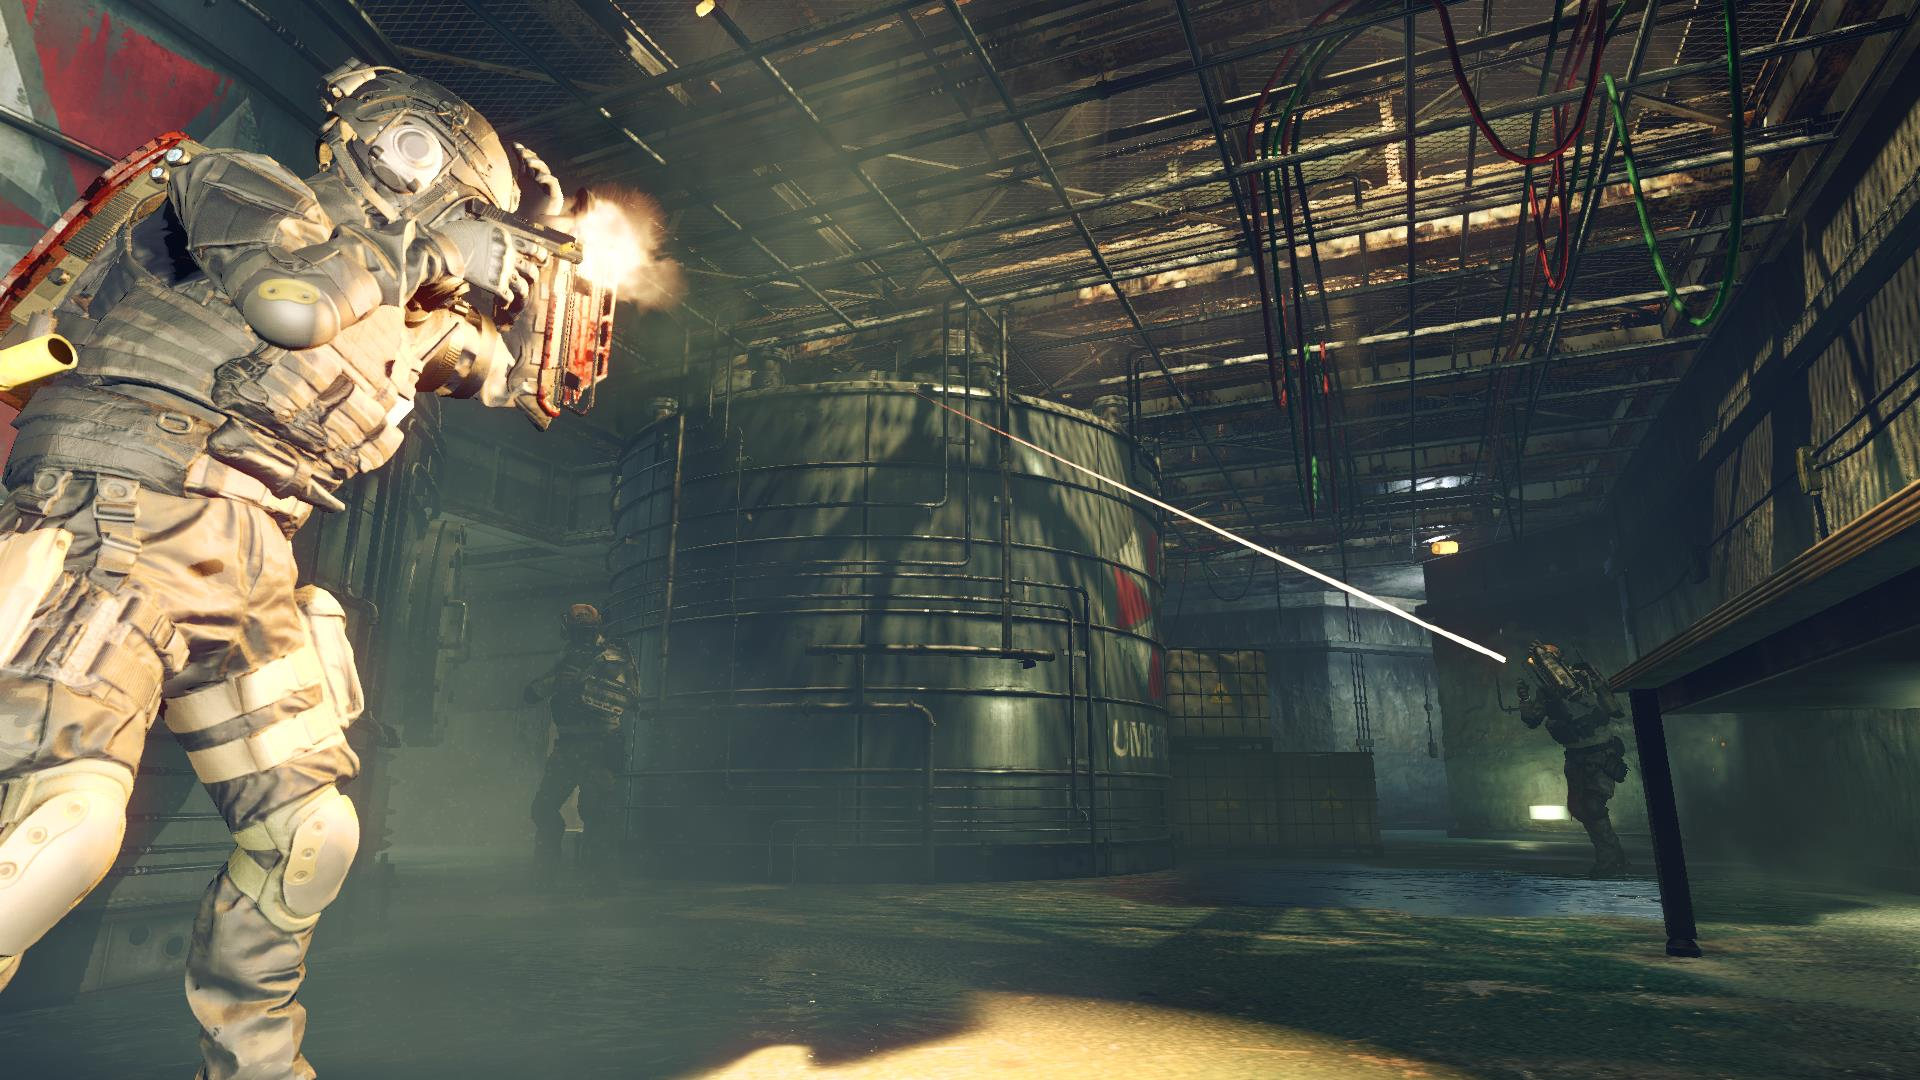 Resident Evil: Umbrella Corps announced for PS4 and PC | VG247